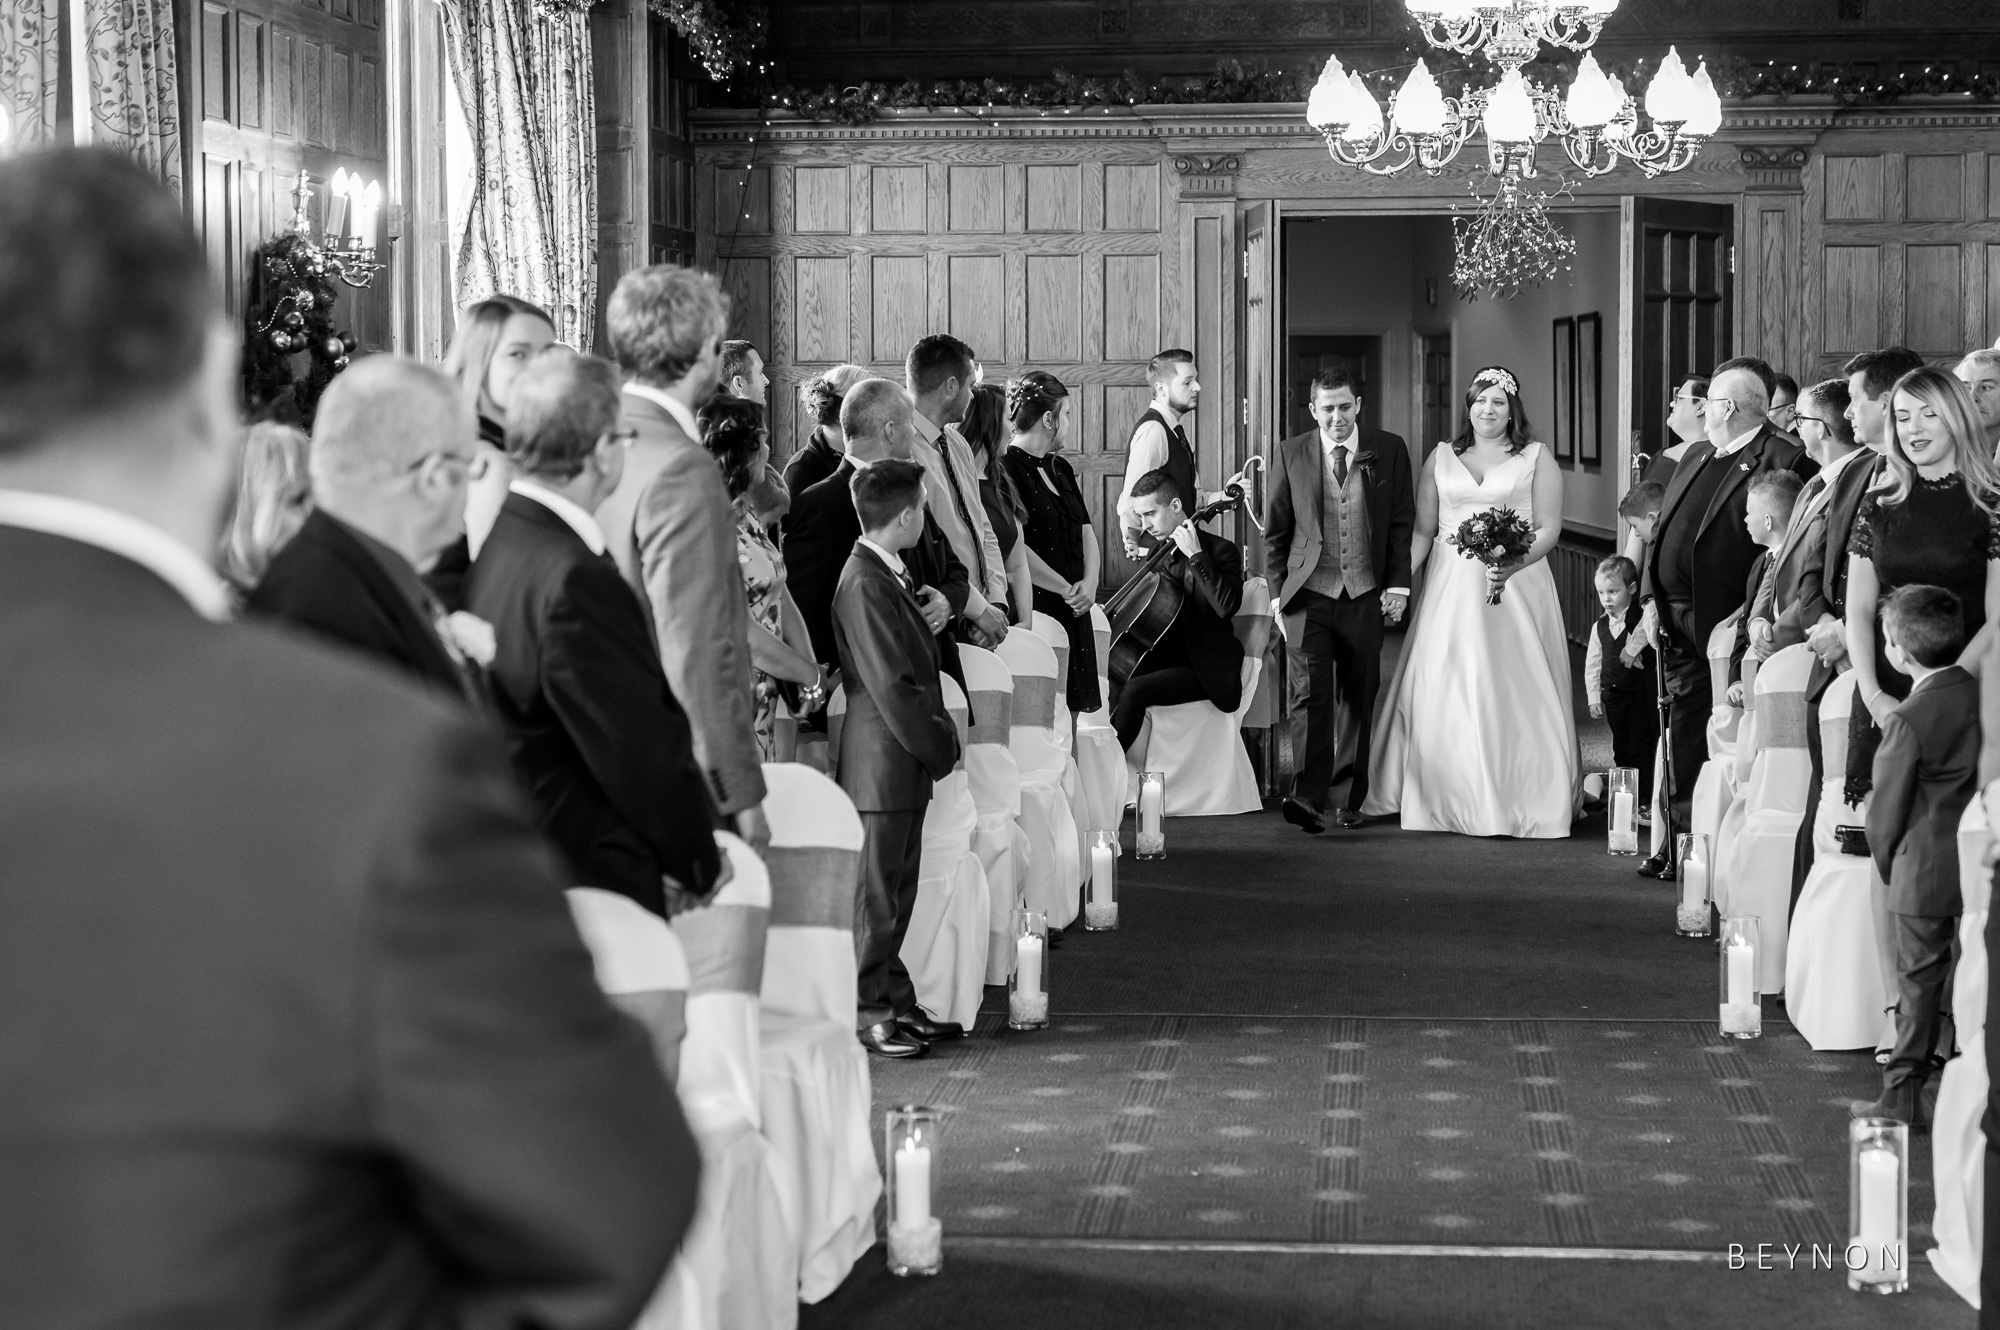 The Bride enters the room as the Groom watches